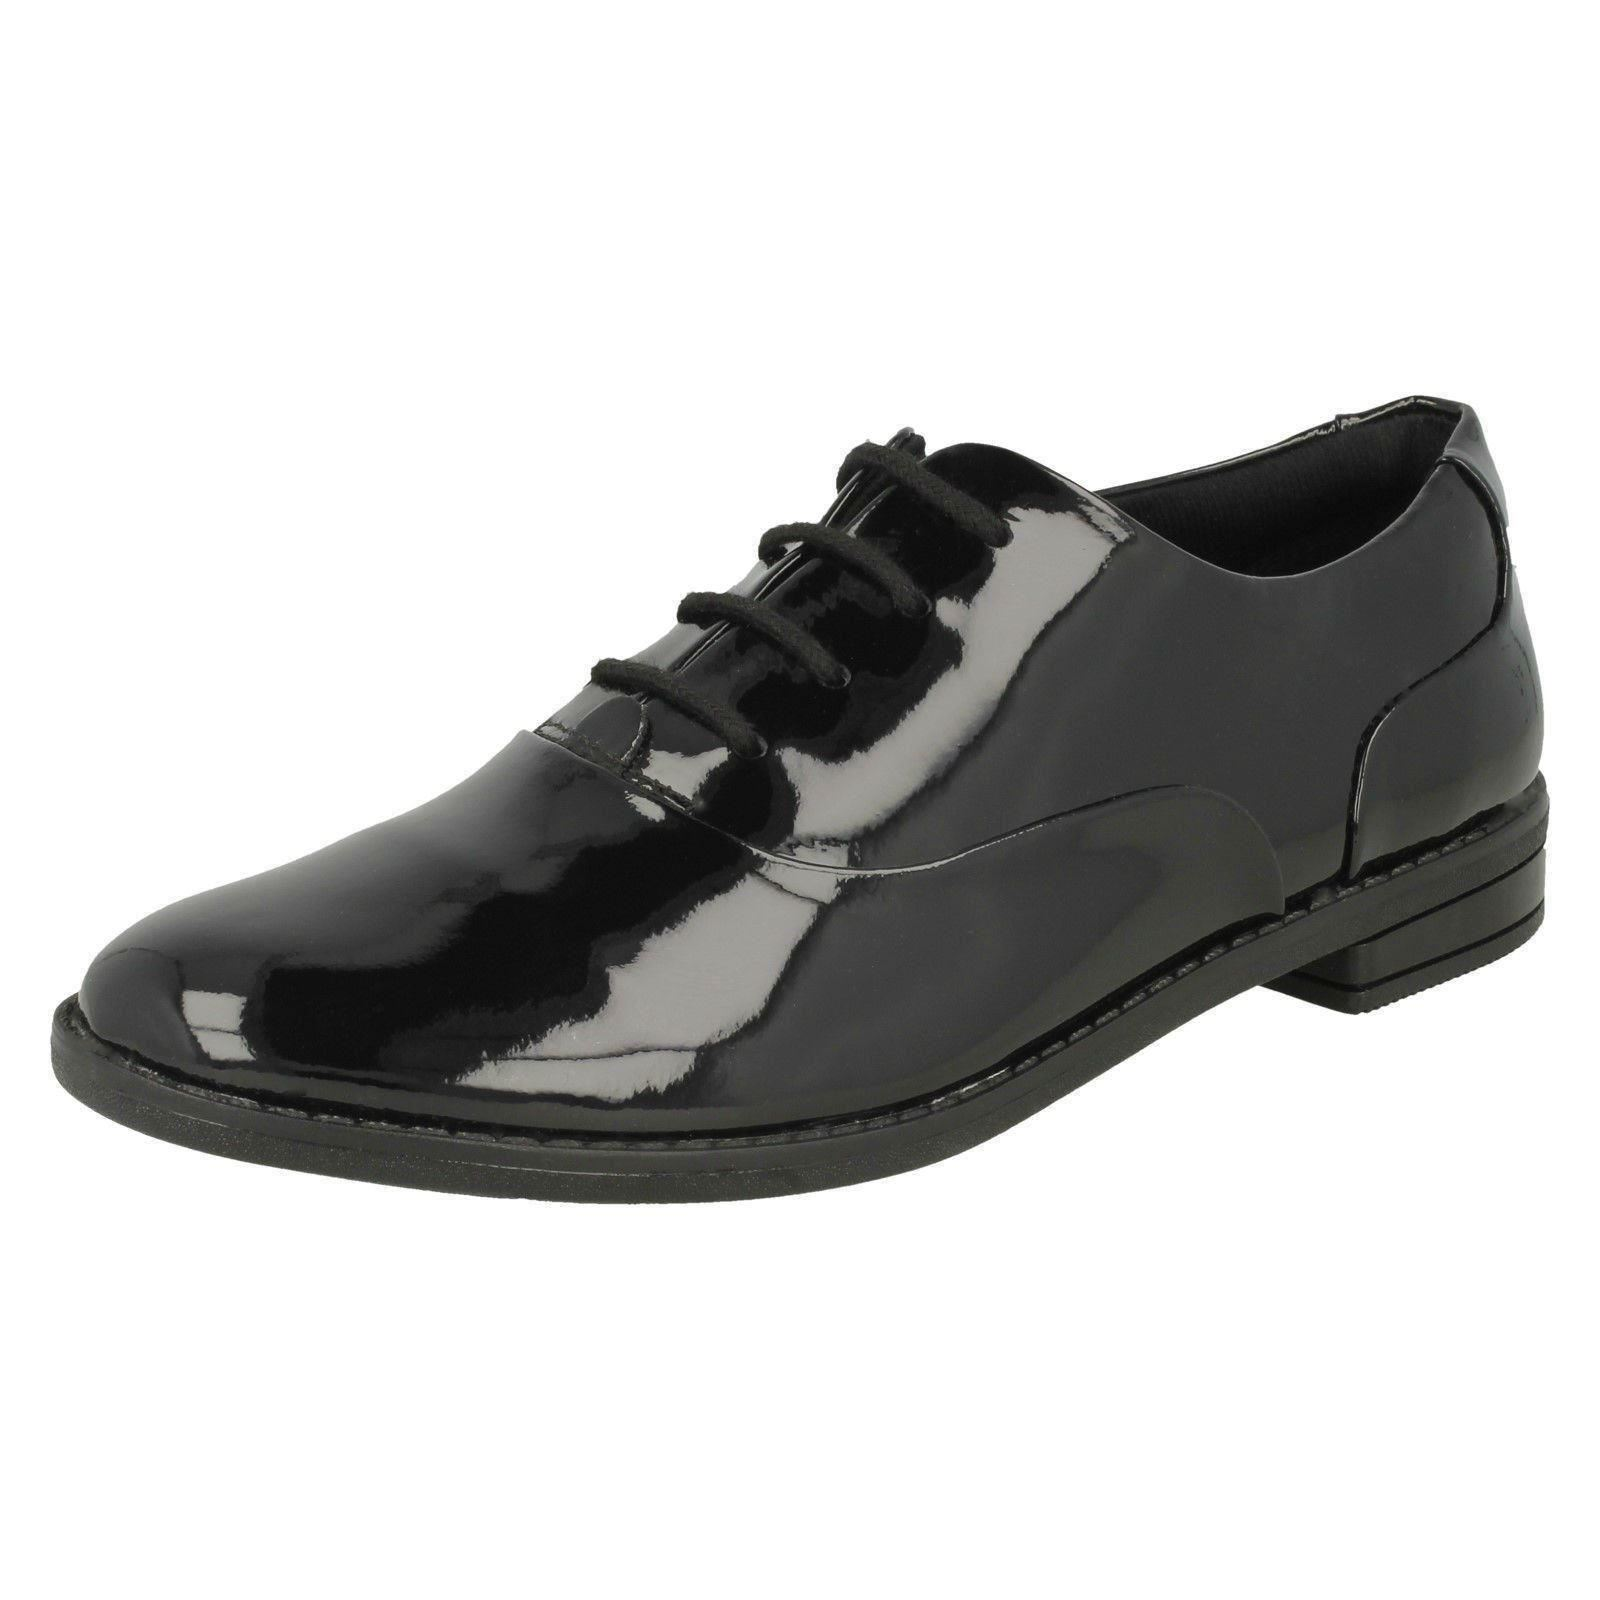 a9b1480069a Details about Clarks Girls Lace Up Brogue School Shoes  Drew Star